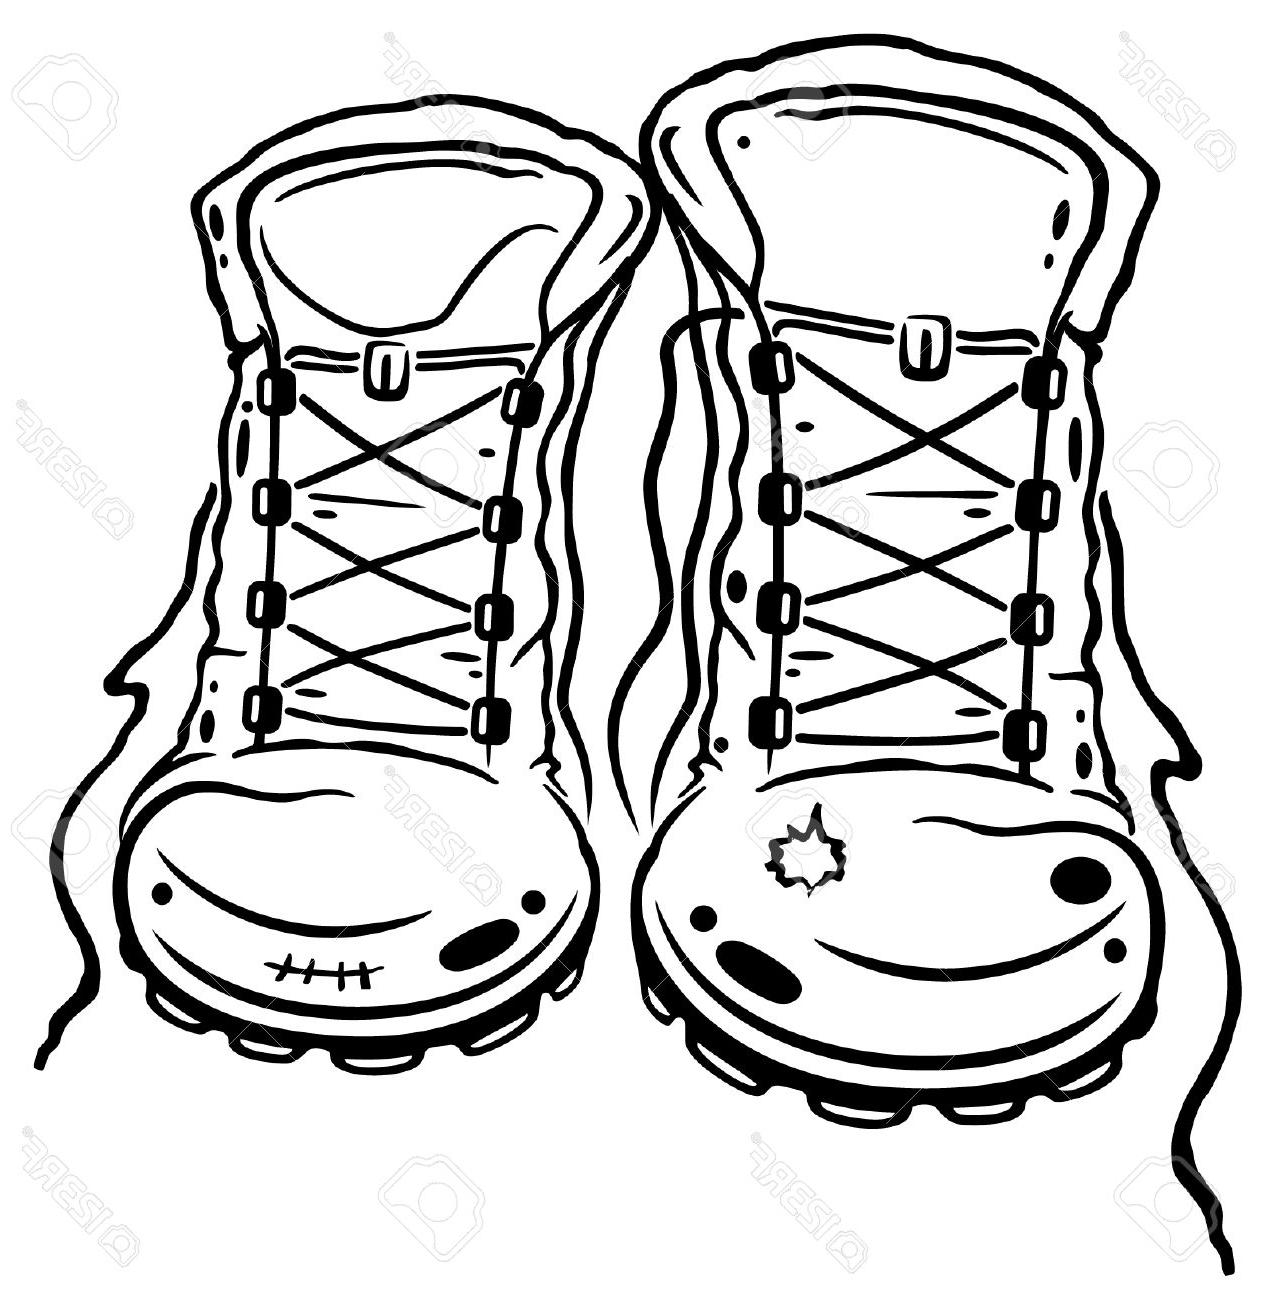 1274x1300 Best Free Boots Clipart Hiking Black And Pictures